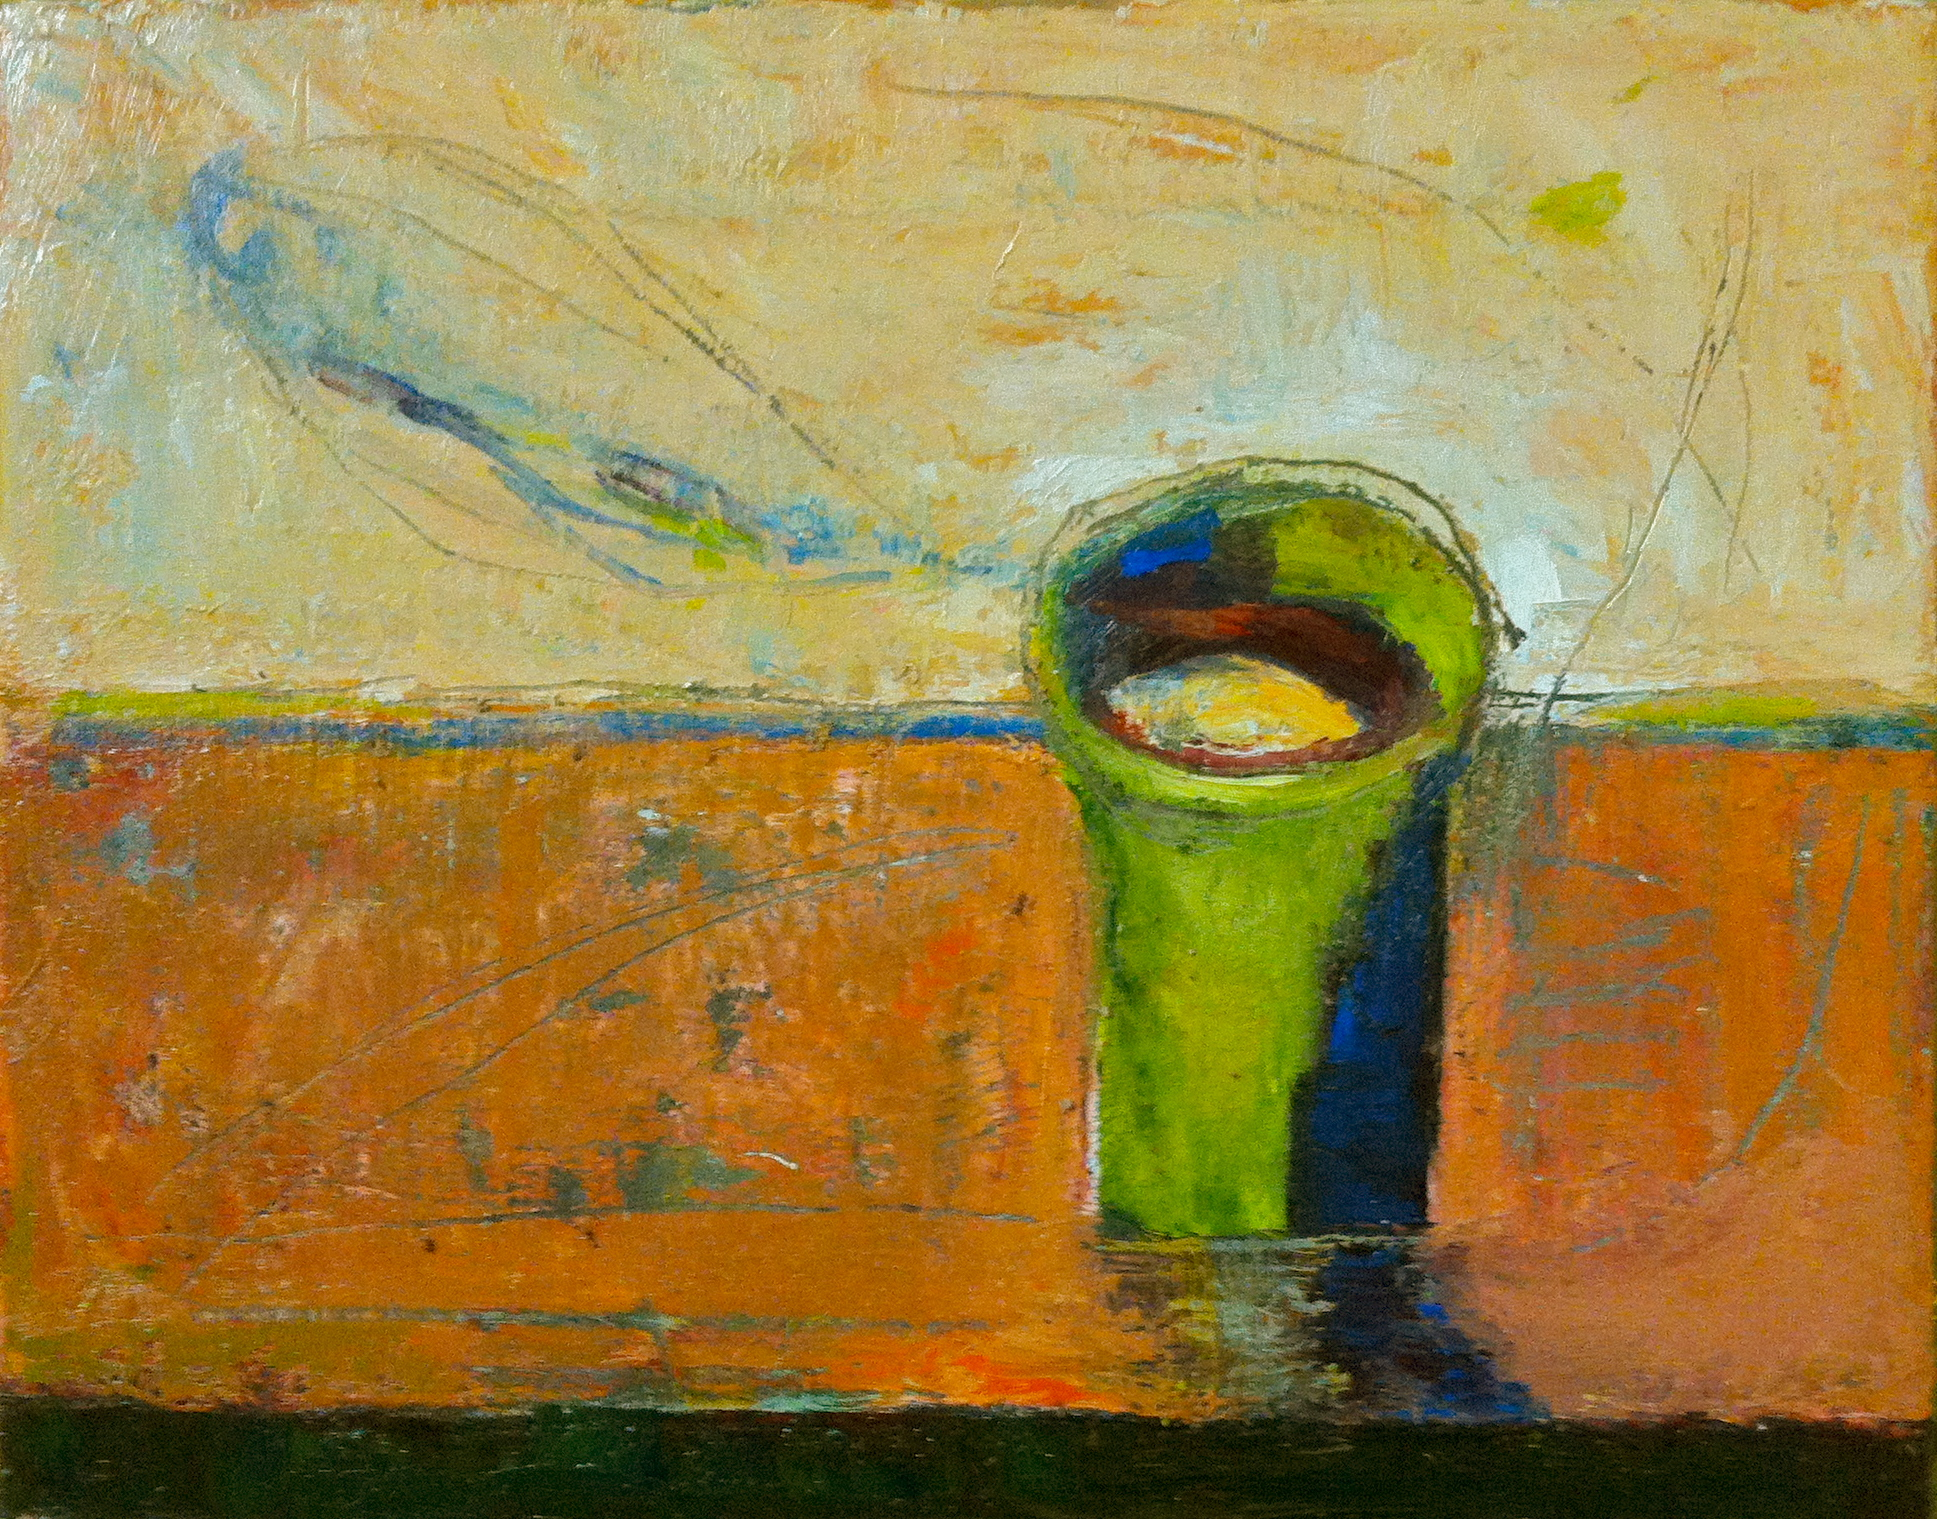 Green cup, oil on canvas, 12x11 inches, 2015